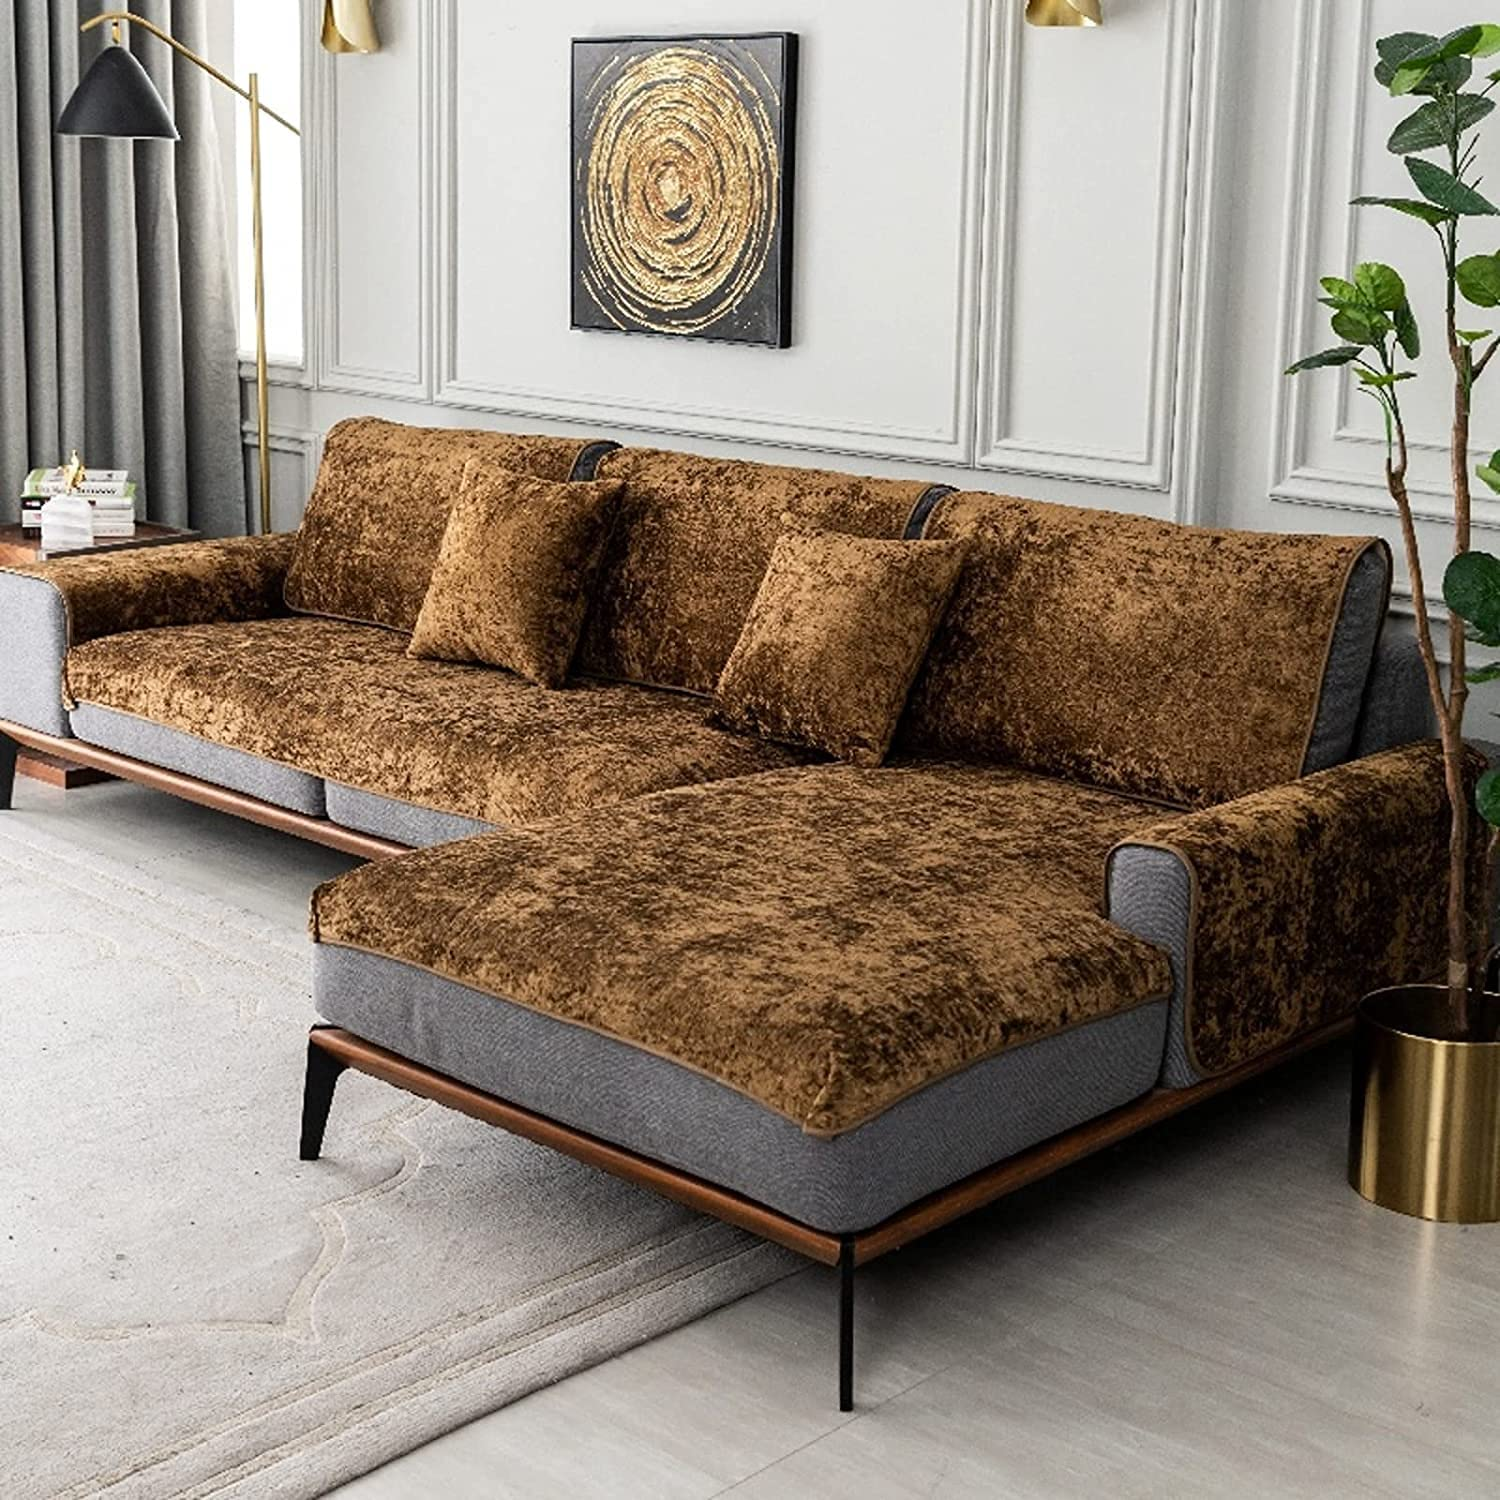 Discount is also underway ZYZCJT 100% Waterproof Jacquard Sofa Slipcover Suede Albuquerque Mall